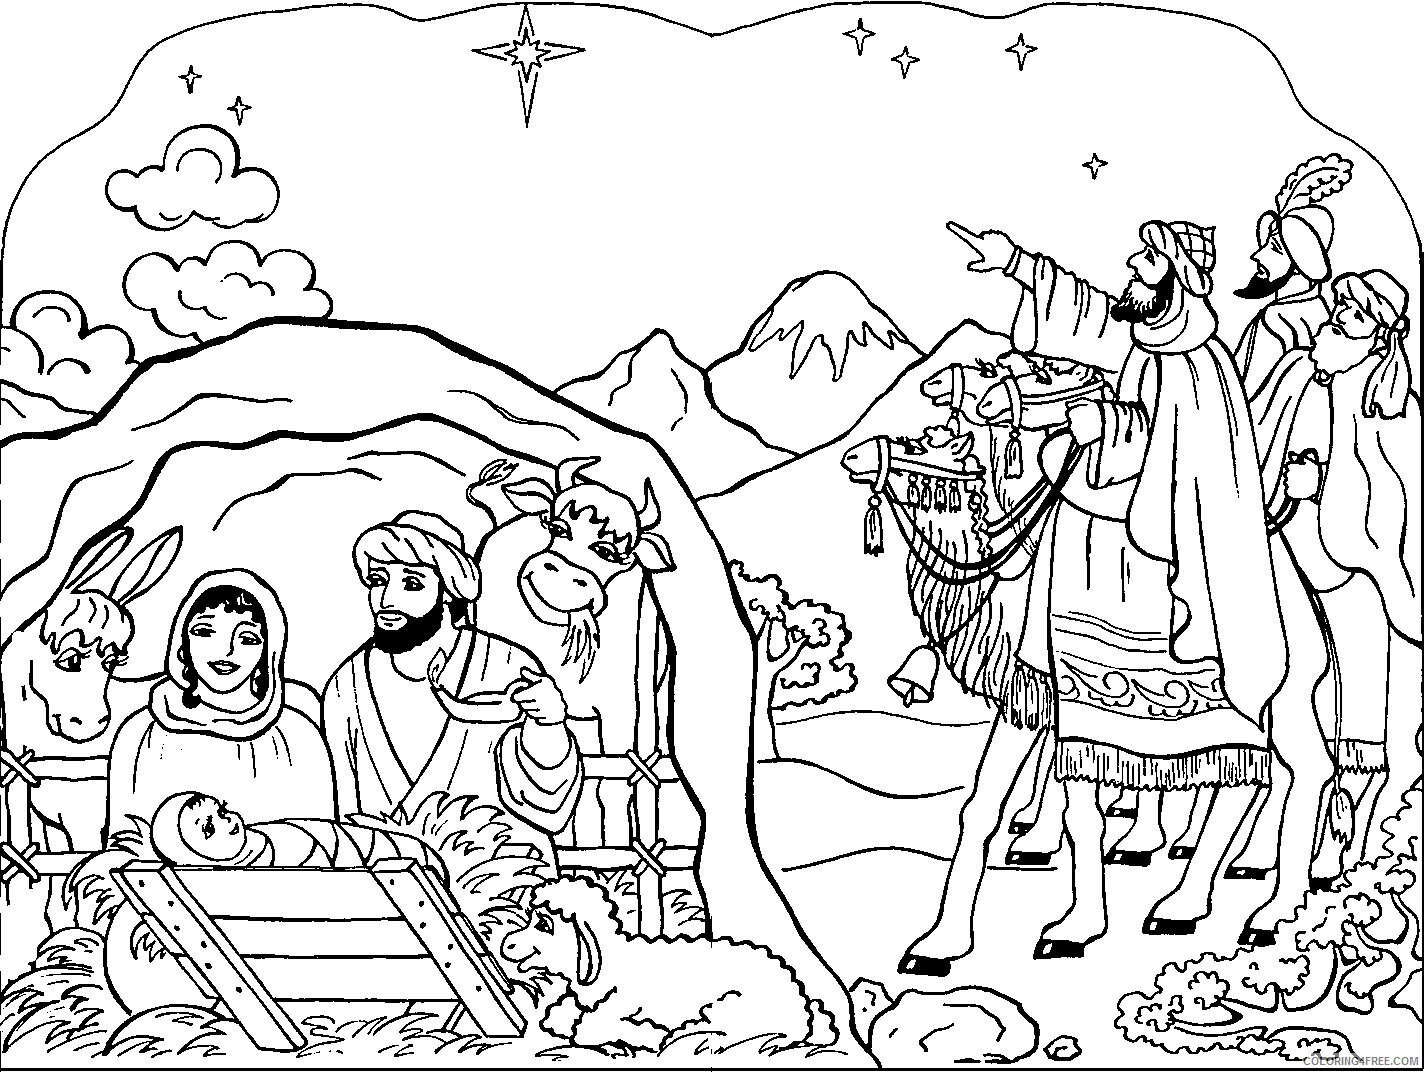 Az Colouring Christmas Coloring Pages Printable Sheets Baby Jesus For Kids 2021 a 4498 Coloring4free